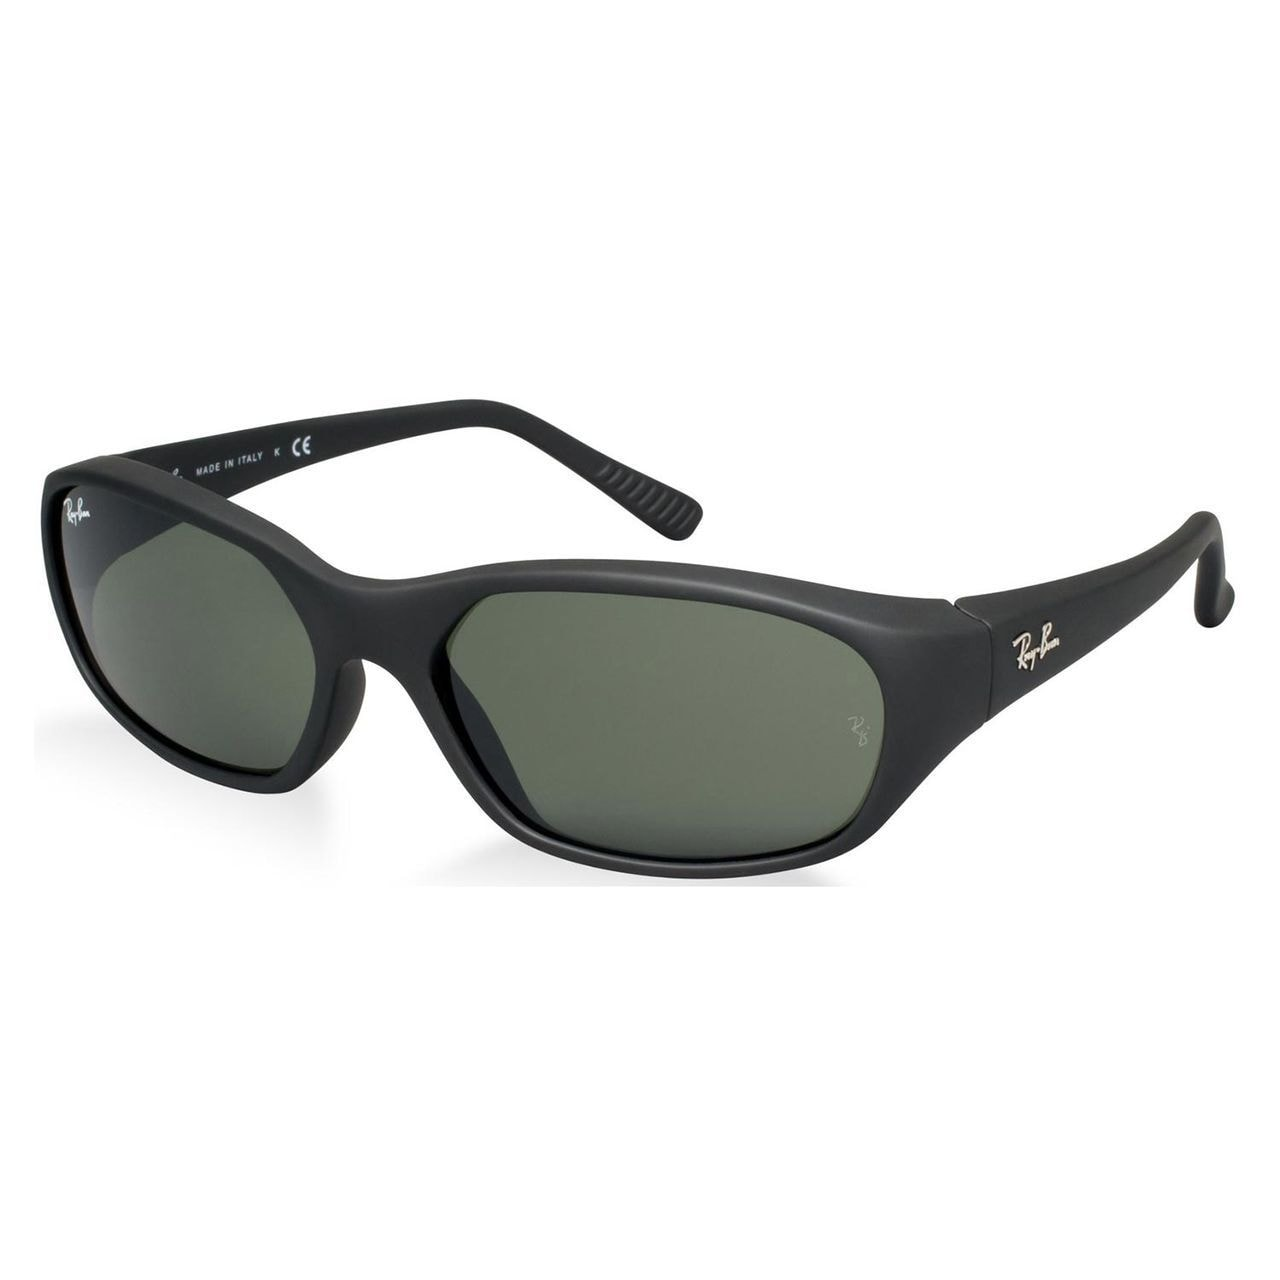 66f35bdaa7a7a5 Shop Ray-Ban DADDY-O SQUARE WRAP SUNGLASSES RB 2016 W2578 - Free Shipping  Today - Overstock - 10022925